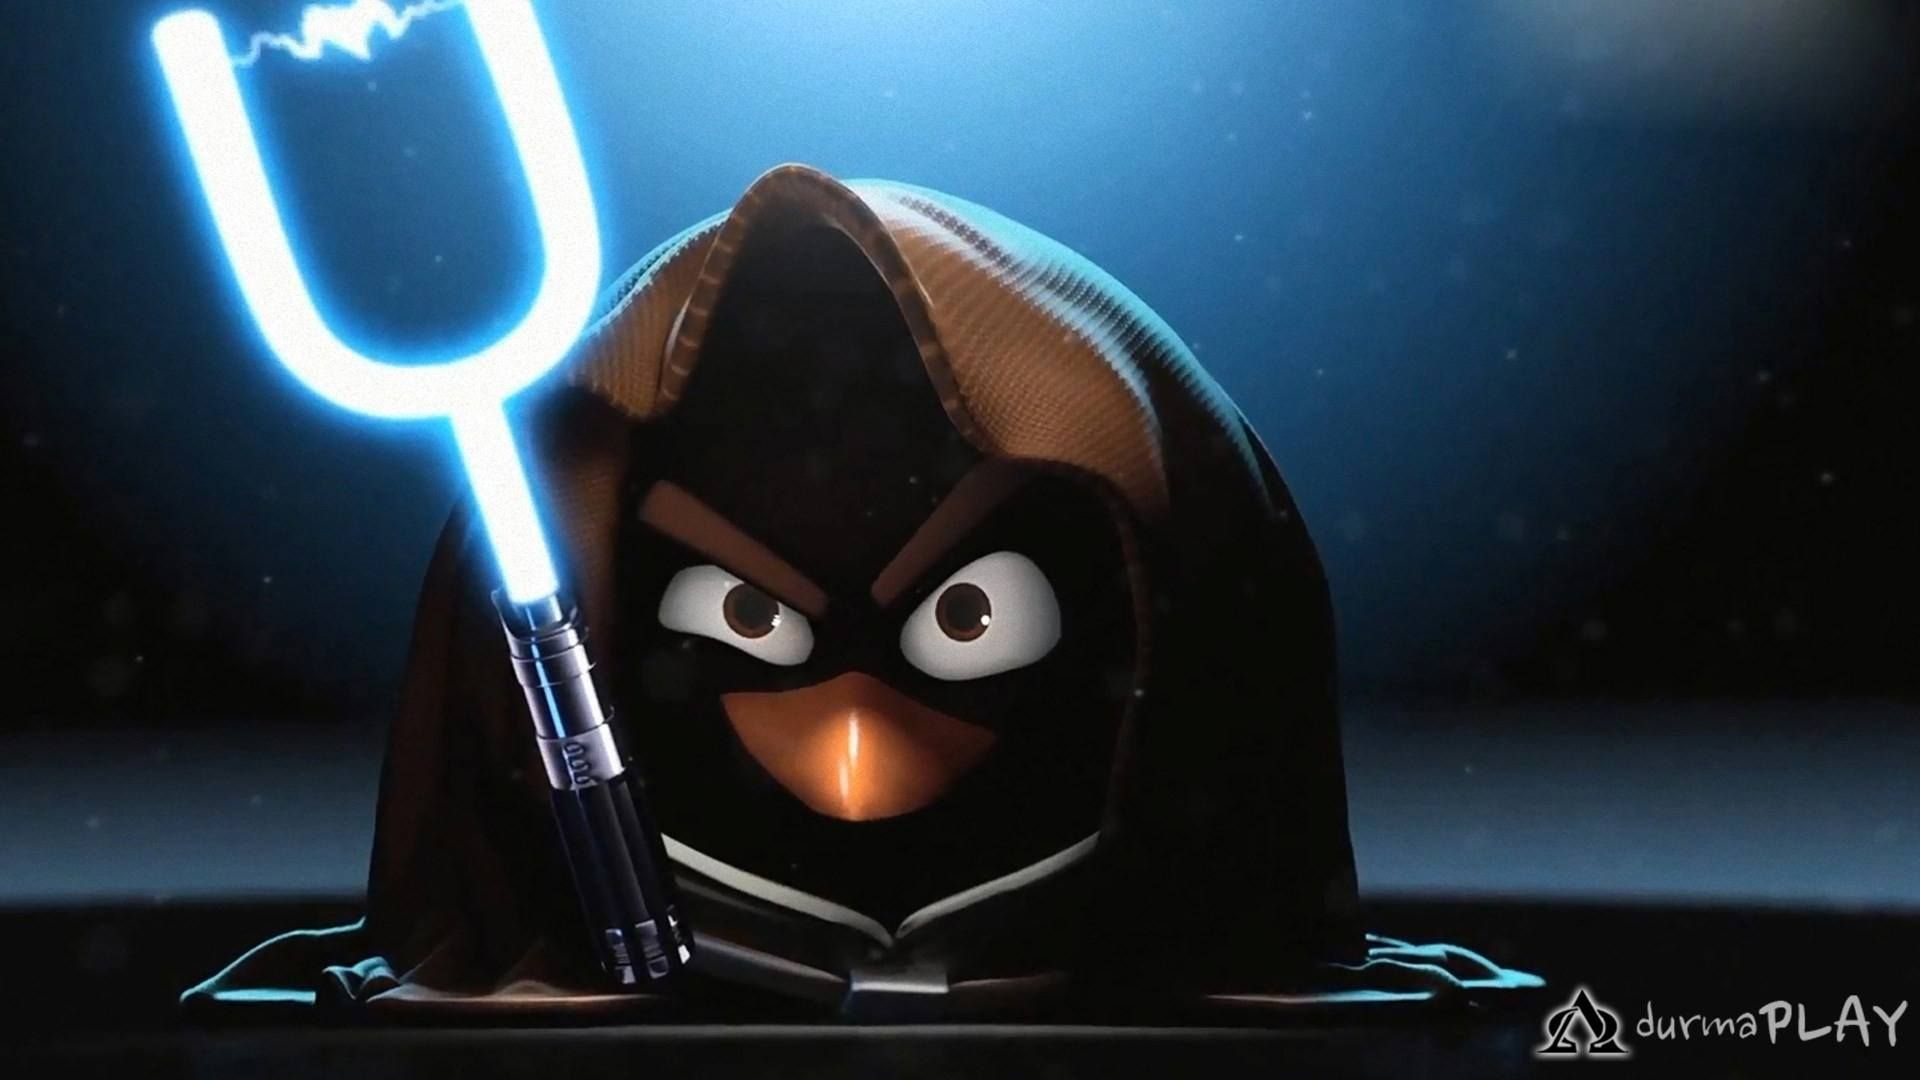 https://www.durmaplay.com/product/angry-birds-star-wars-ps4 angry-birds-star-wars-ps4-playstation-4-screenshot-durmaplay-oyun-001.jpg 1.920×1.080 piksel